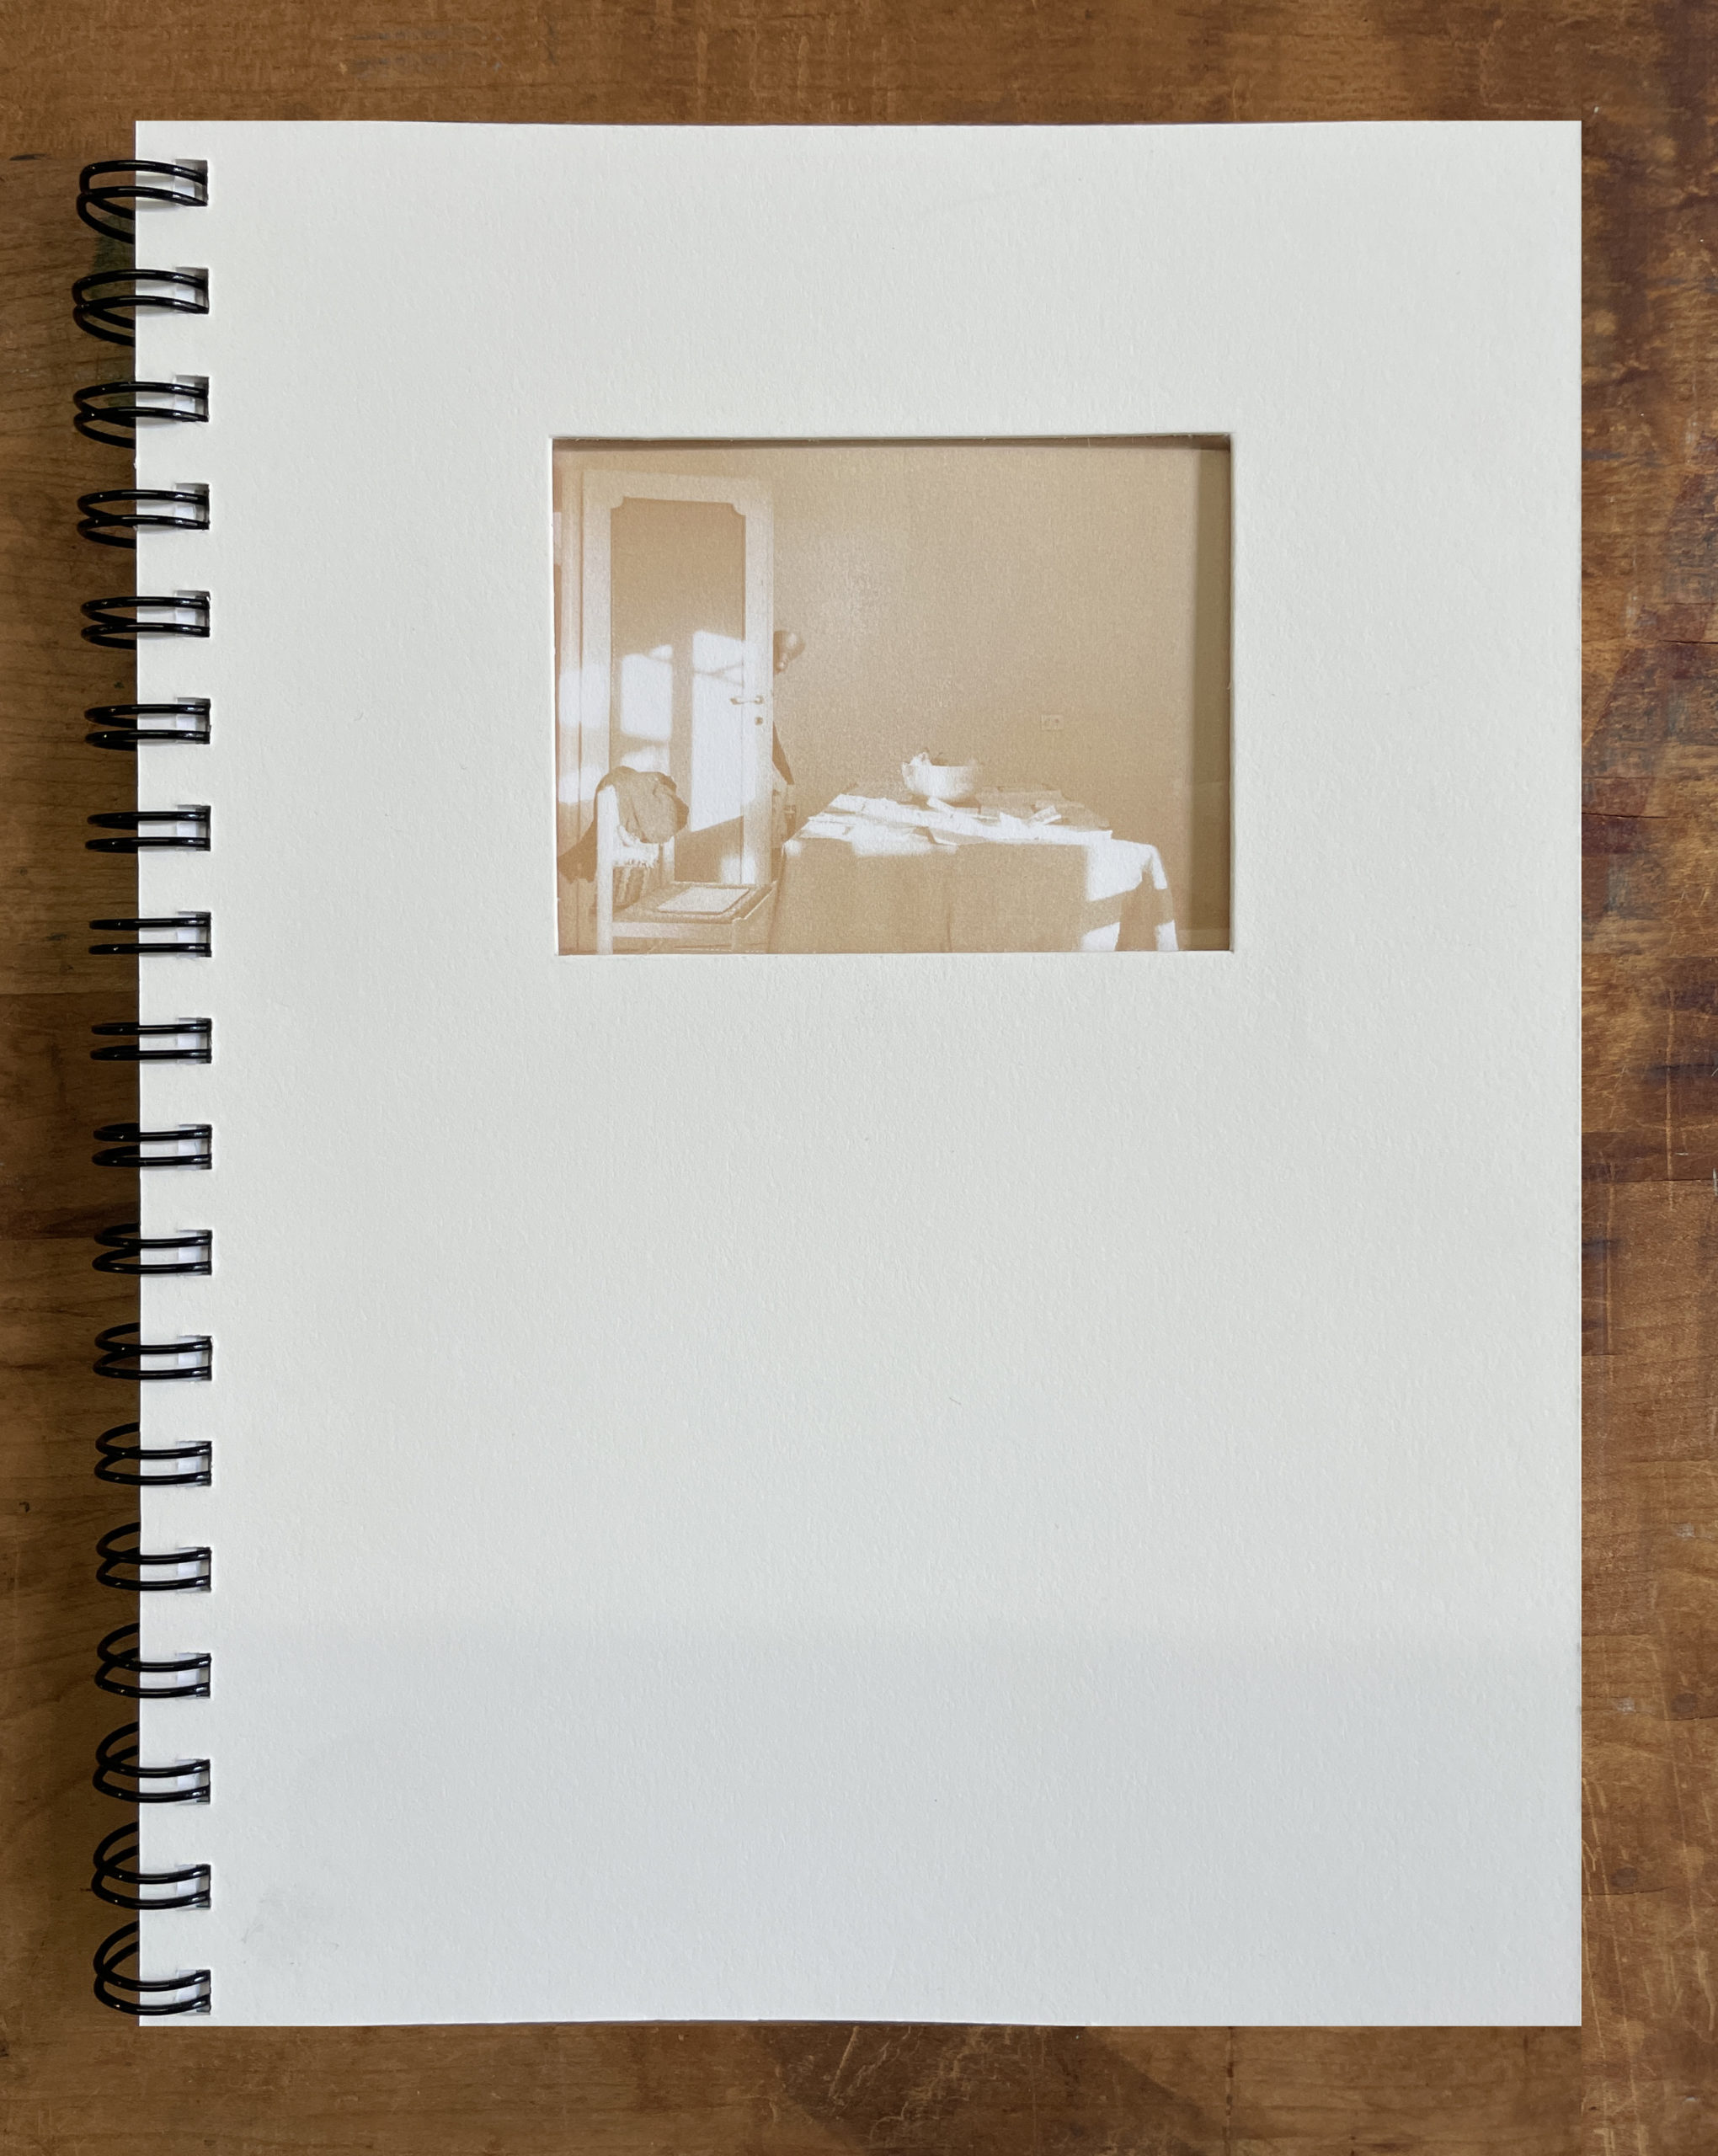 whit book cover with lavender coil binding and 3 by 4 inch window cuth through reveling a photo of a table